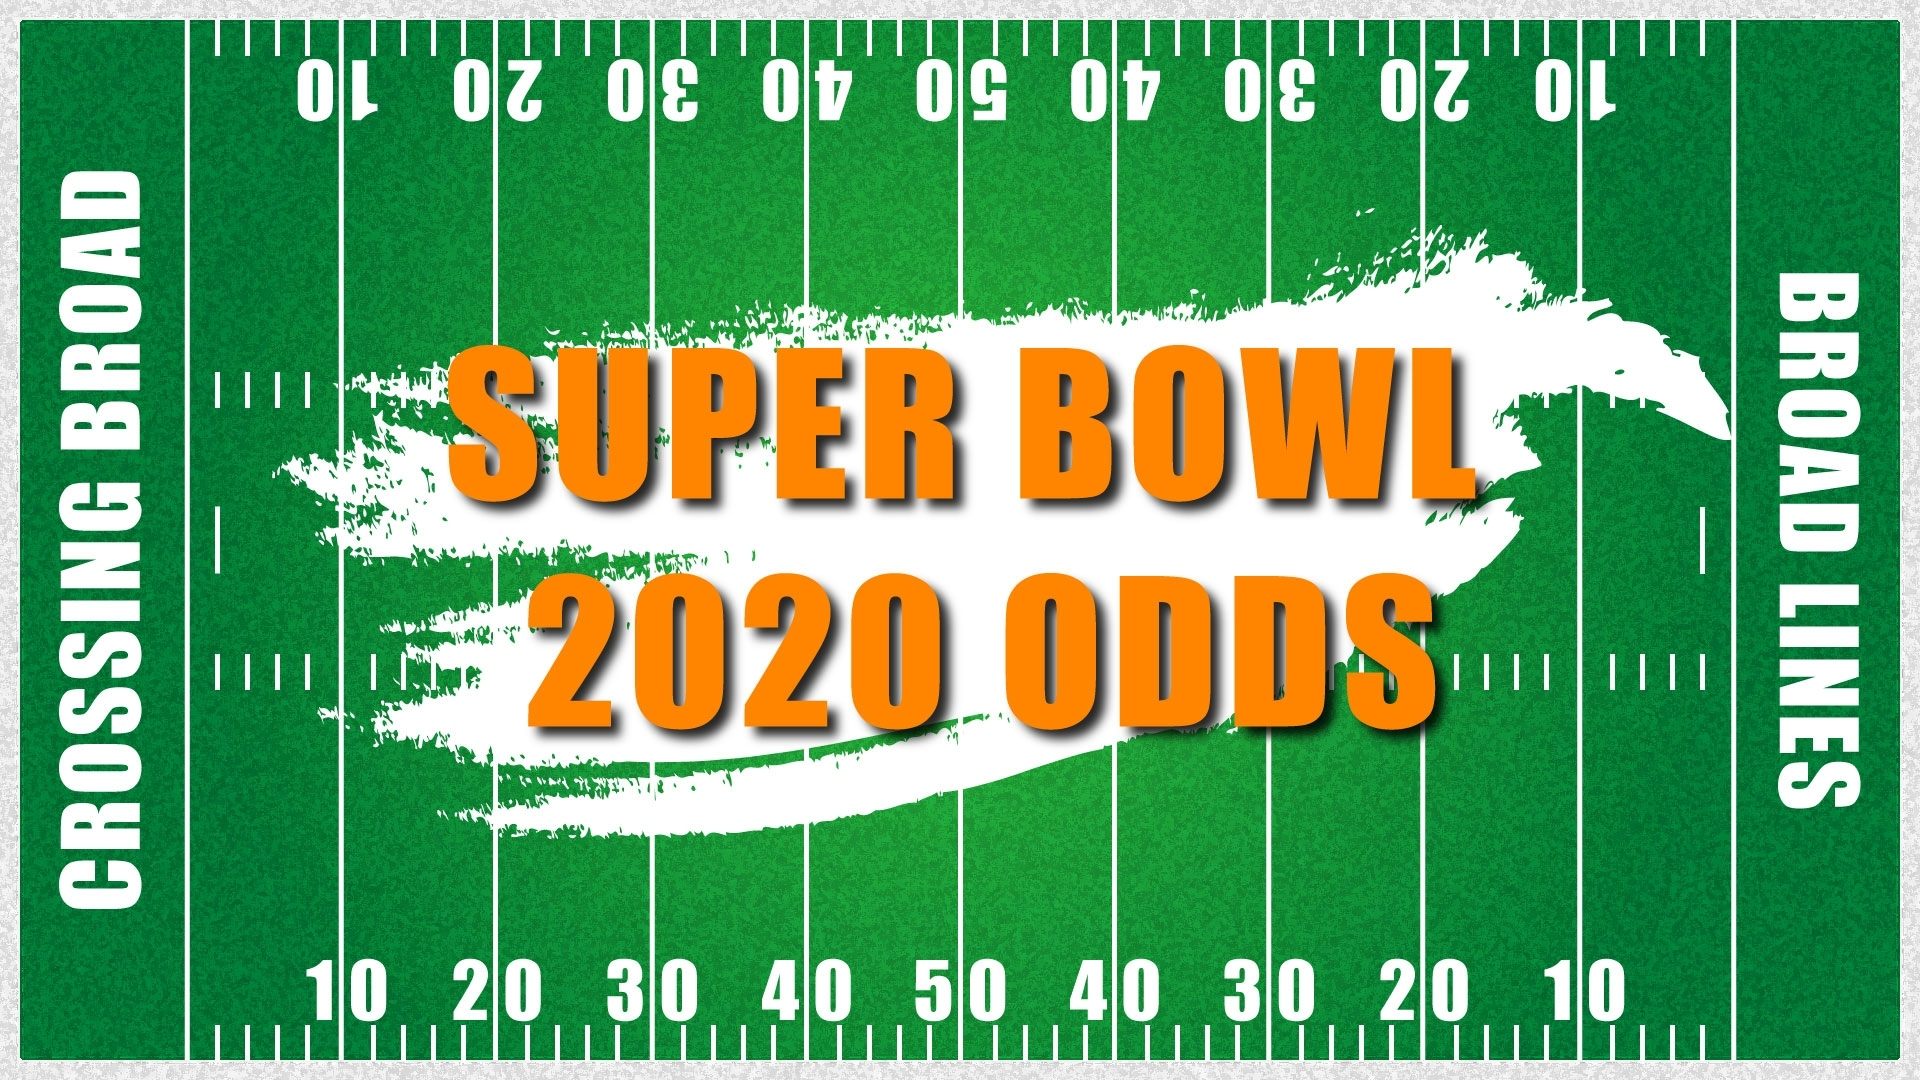 2020 Super Bowl Odds   Odds To Win Super Bowl 54   Crossing throughout Miami Super Bowl Odds